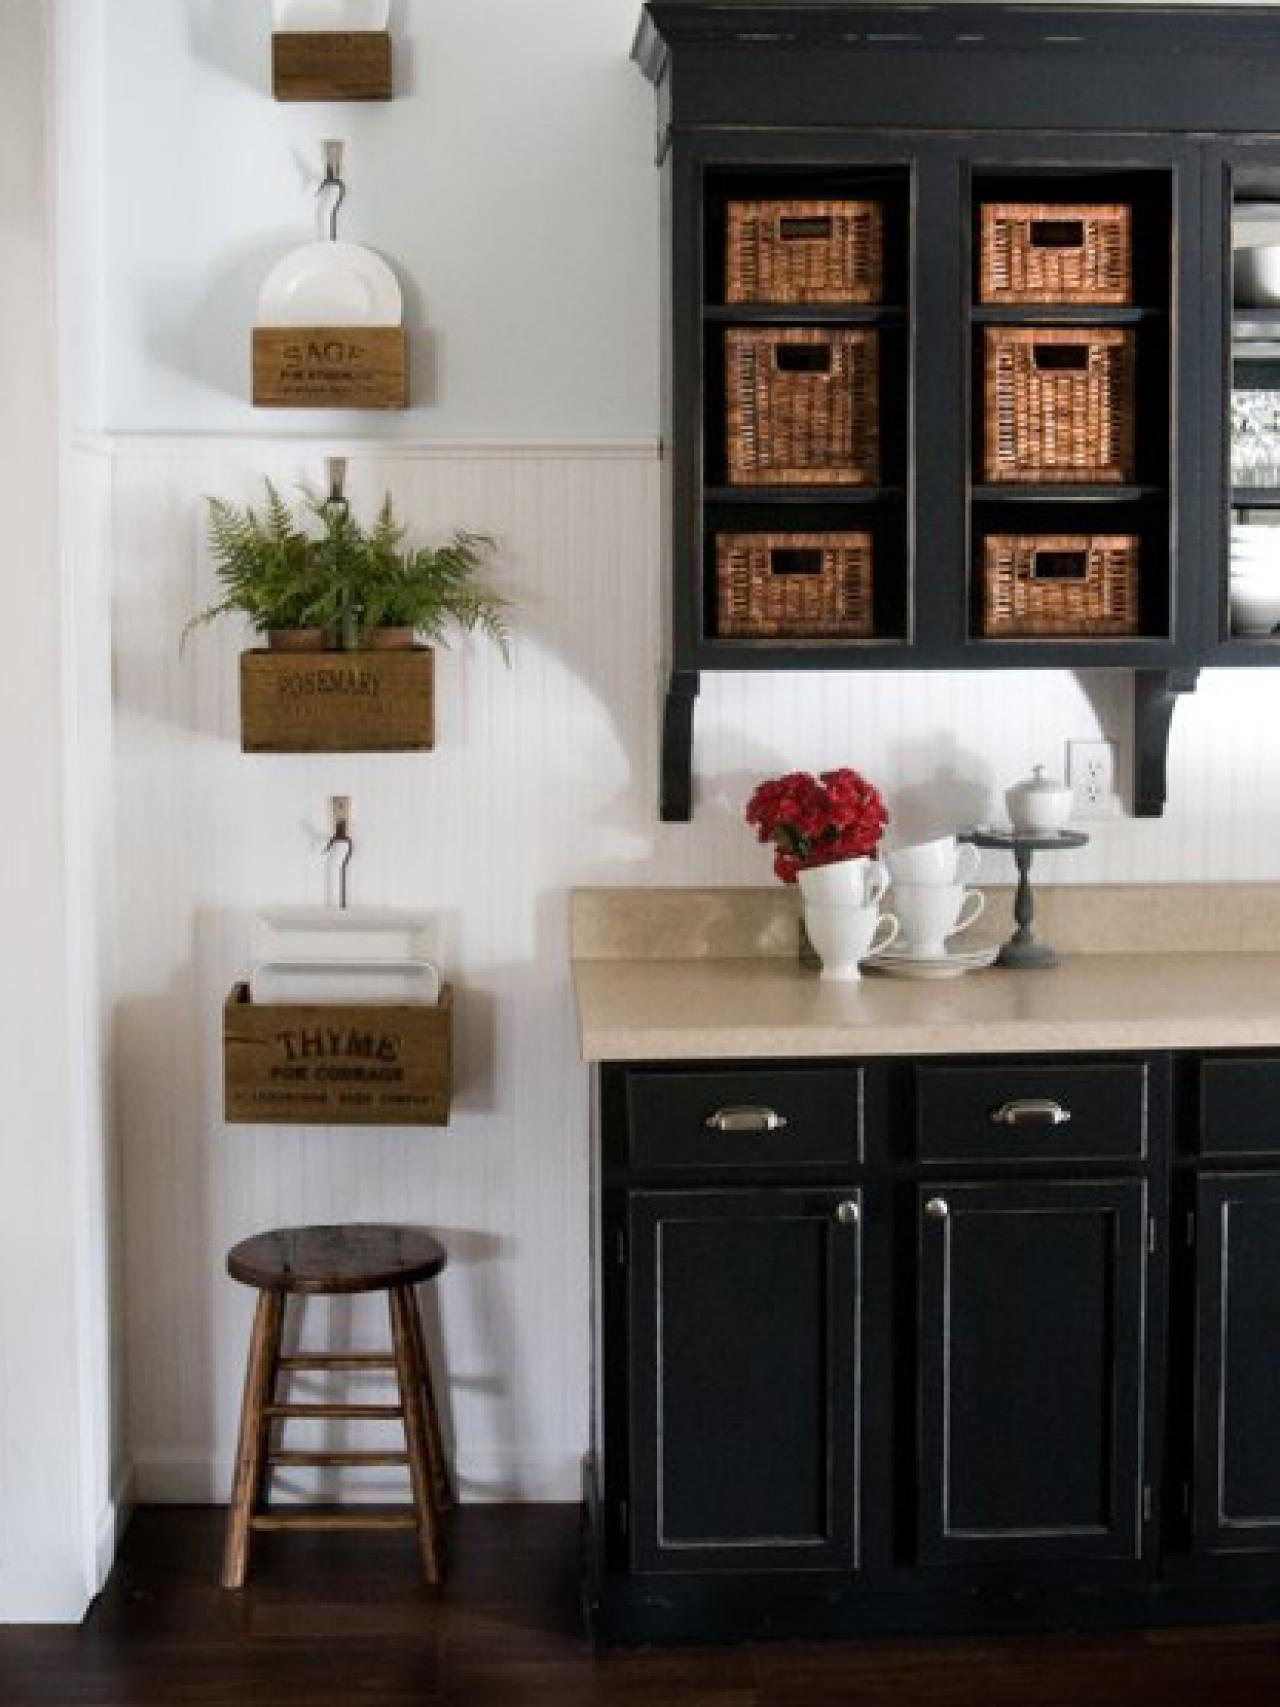 tips on kitchen cabinets | diy